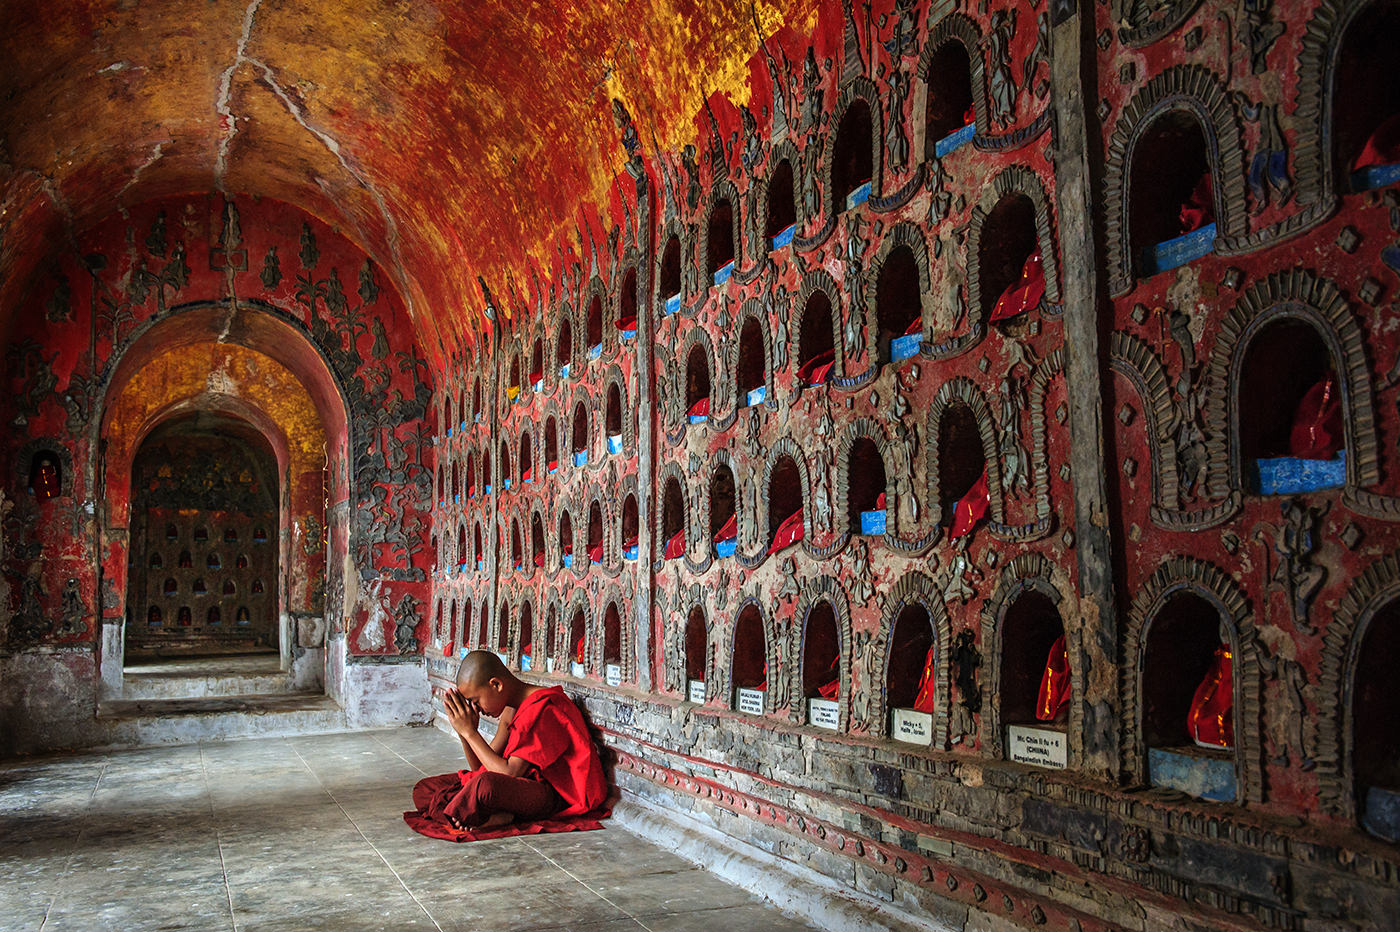 Colour Print - 1st Place: Monk Shwe Tan Pyay Monastery by Dawn White